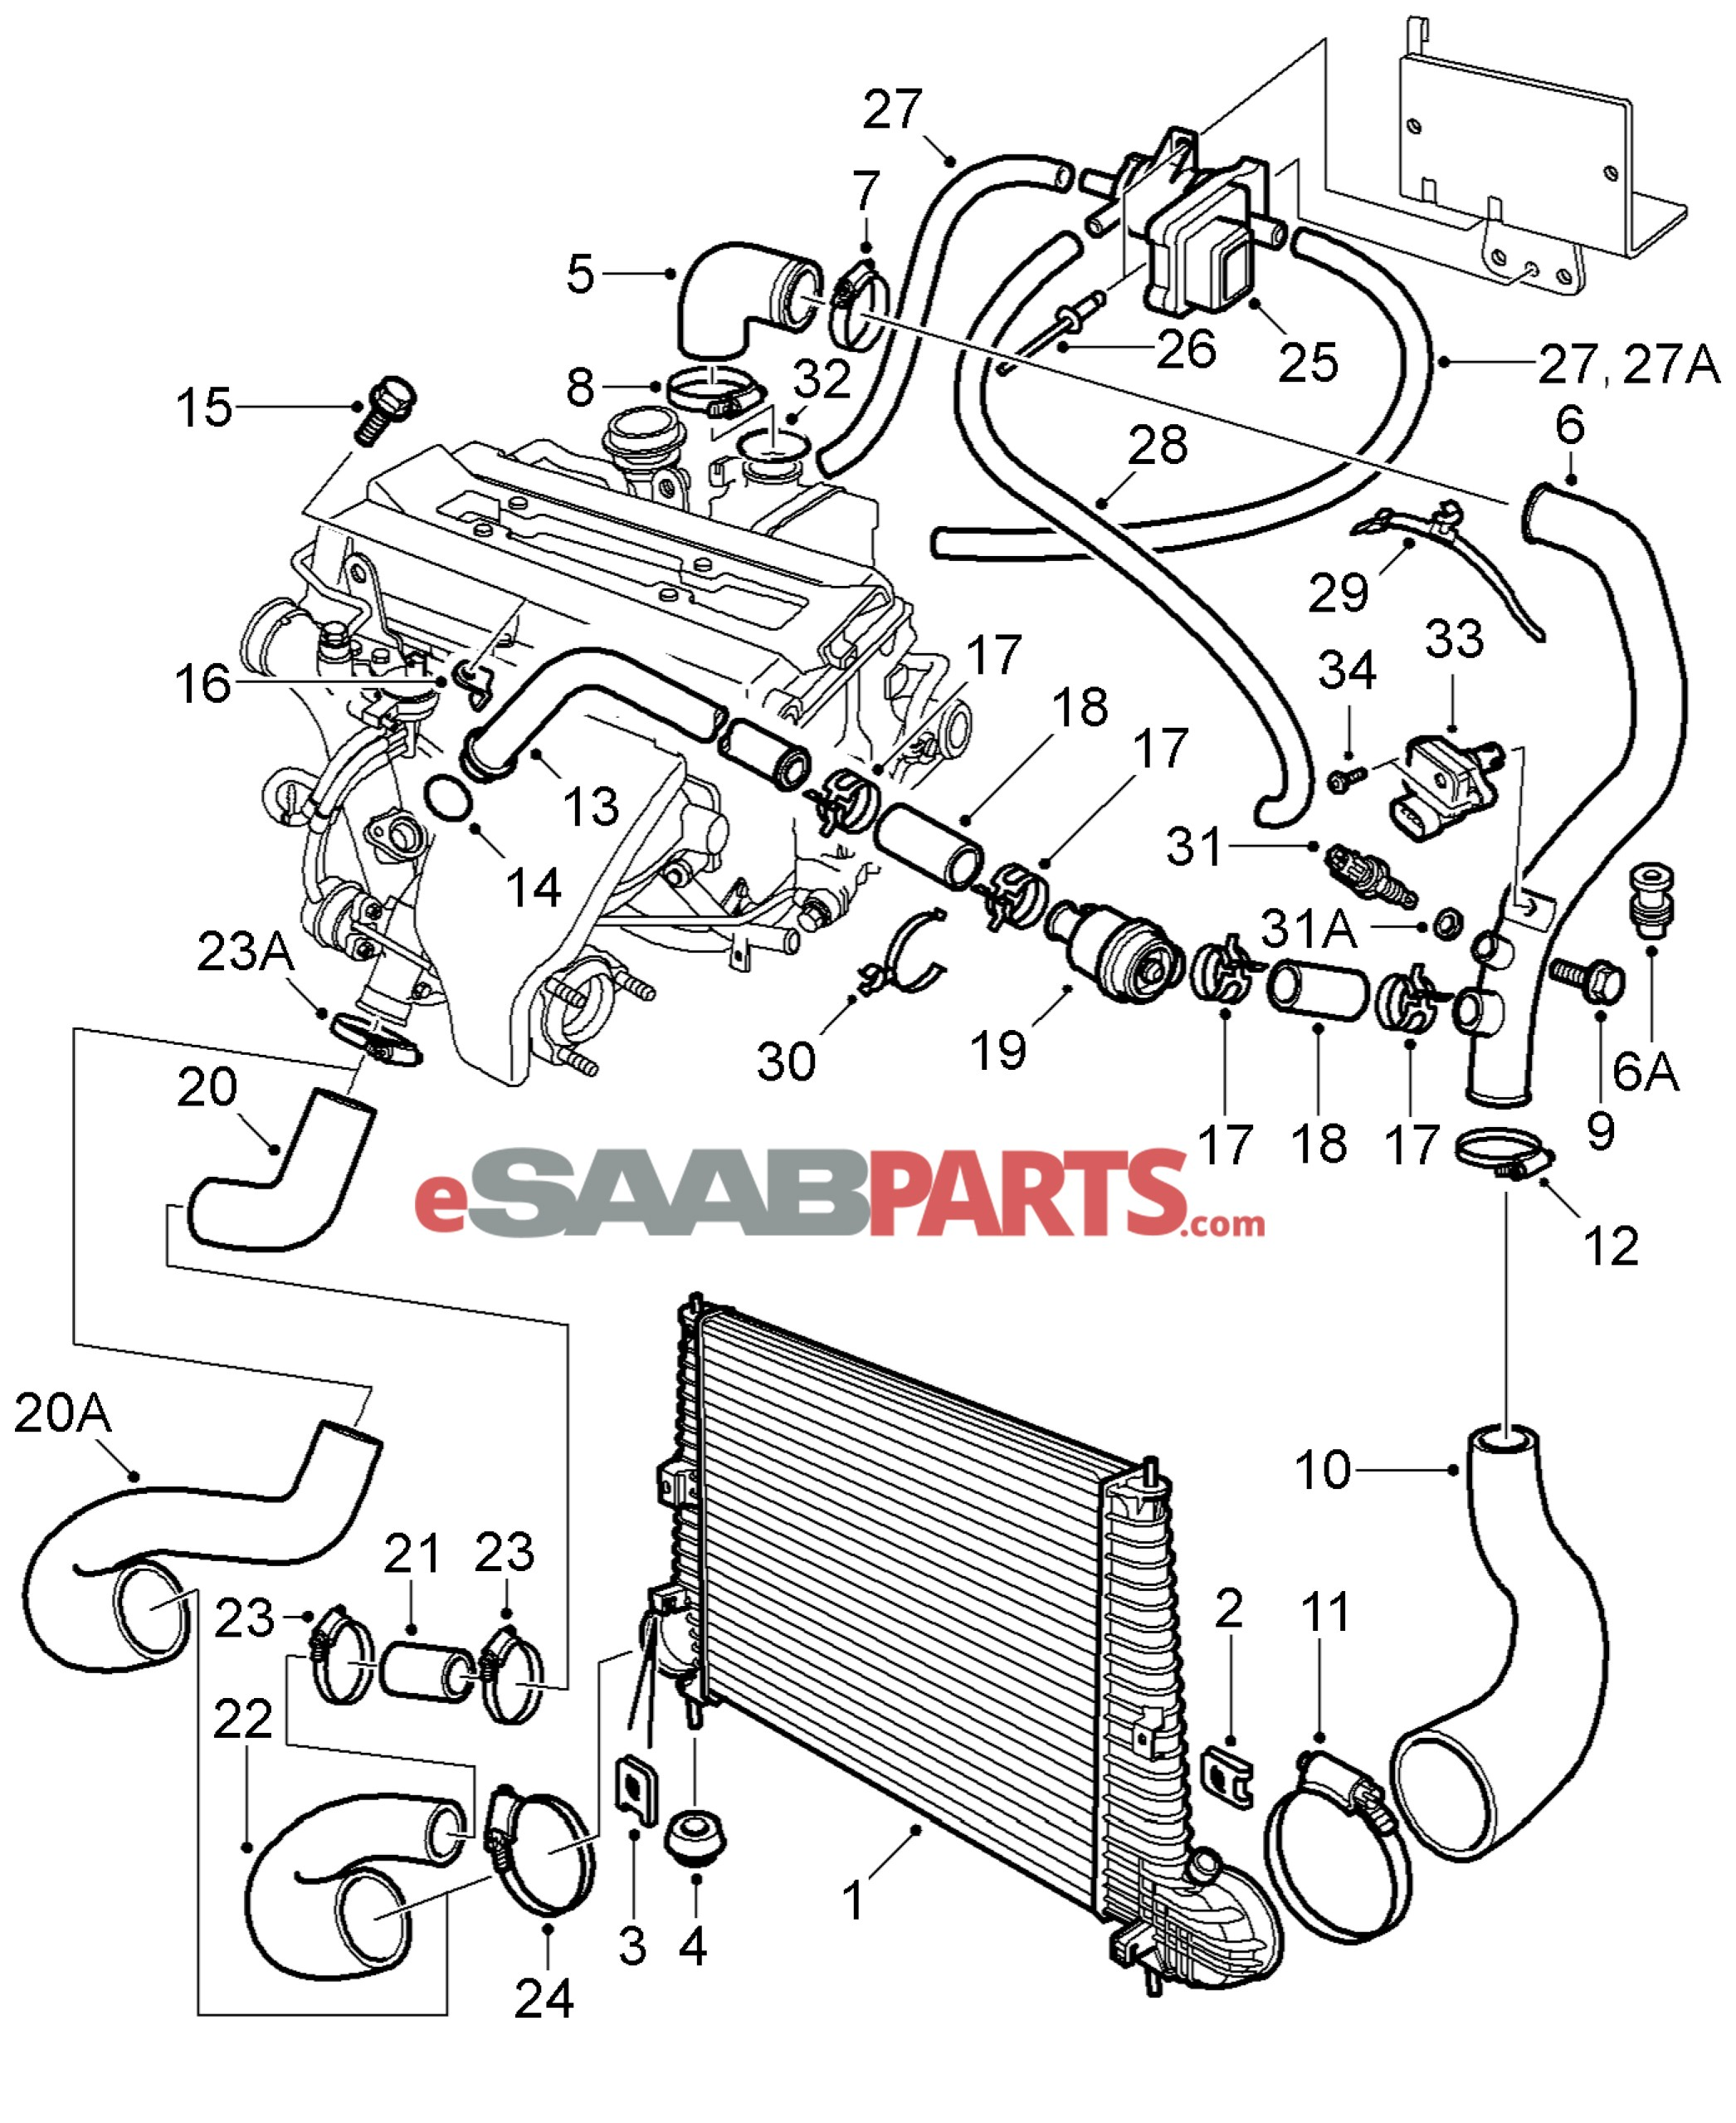 Saab 9 3 engine diagram 2000 saab 9 5 fuse box diagram saab wiring rh detoxicrecenze 2004 saab engine diagram saab 900 engine diagram